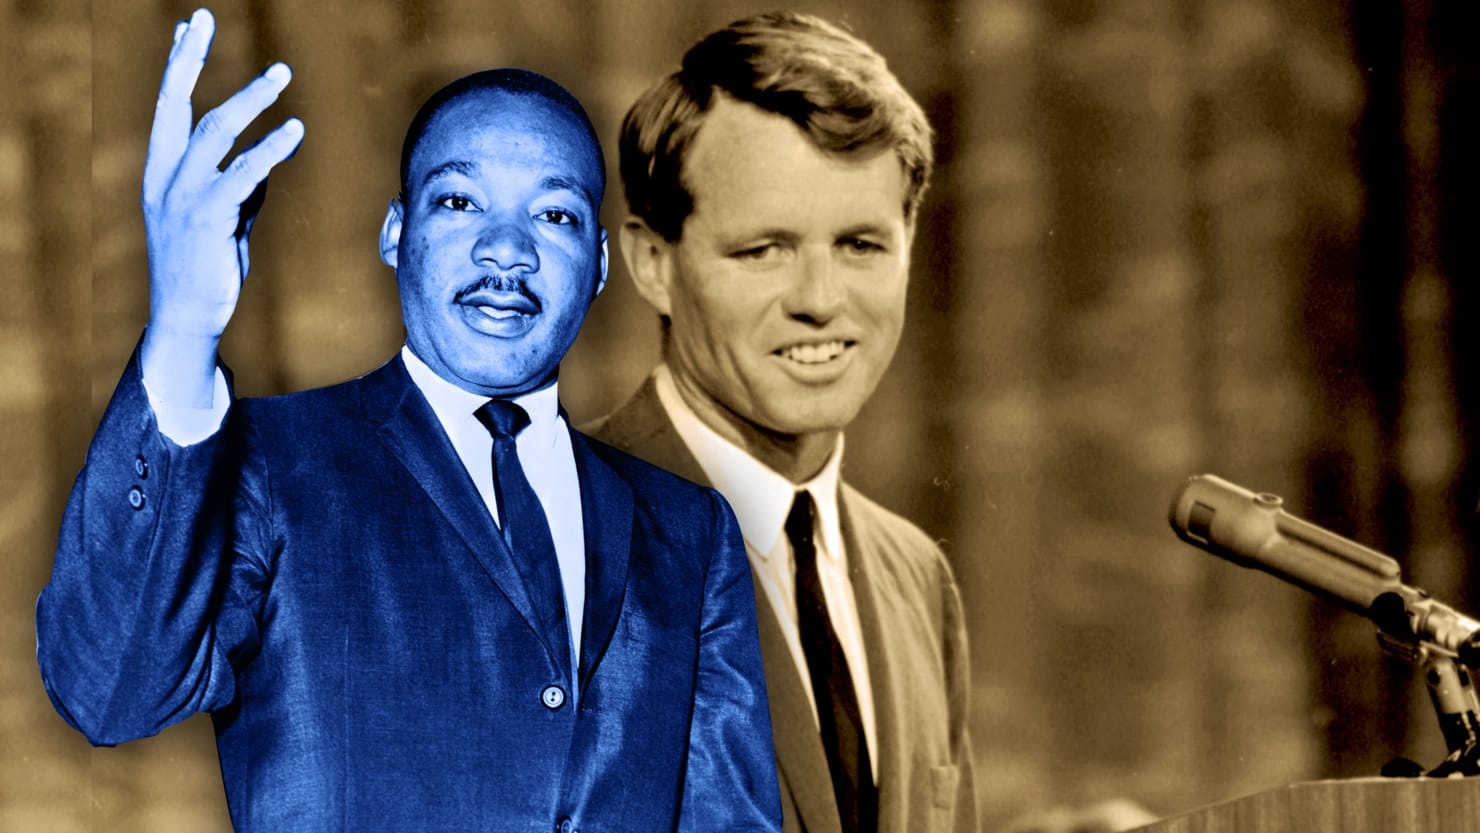 The Revealing Ghosts of Robert F. Kennedy and Martin Luther King Jr.